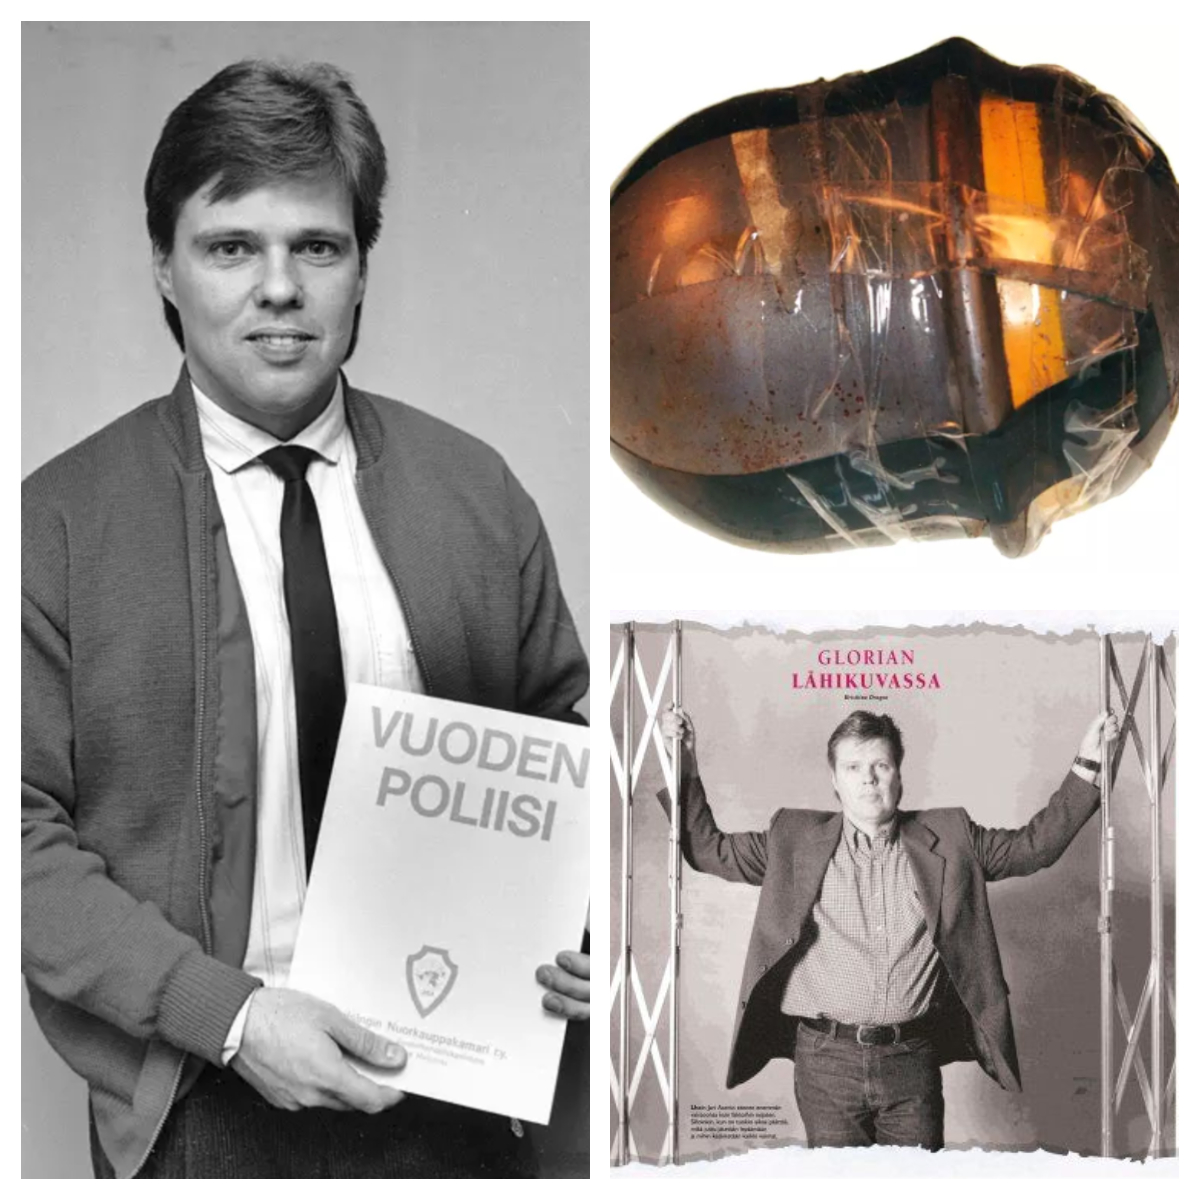 Jari Aarnio was chosen police officer of the year in 1987 and received this certificate. On the right is the bomb that was found on his yard.